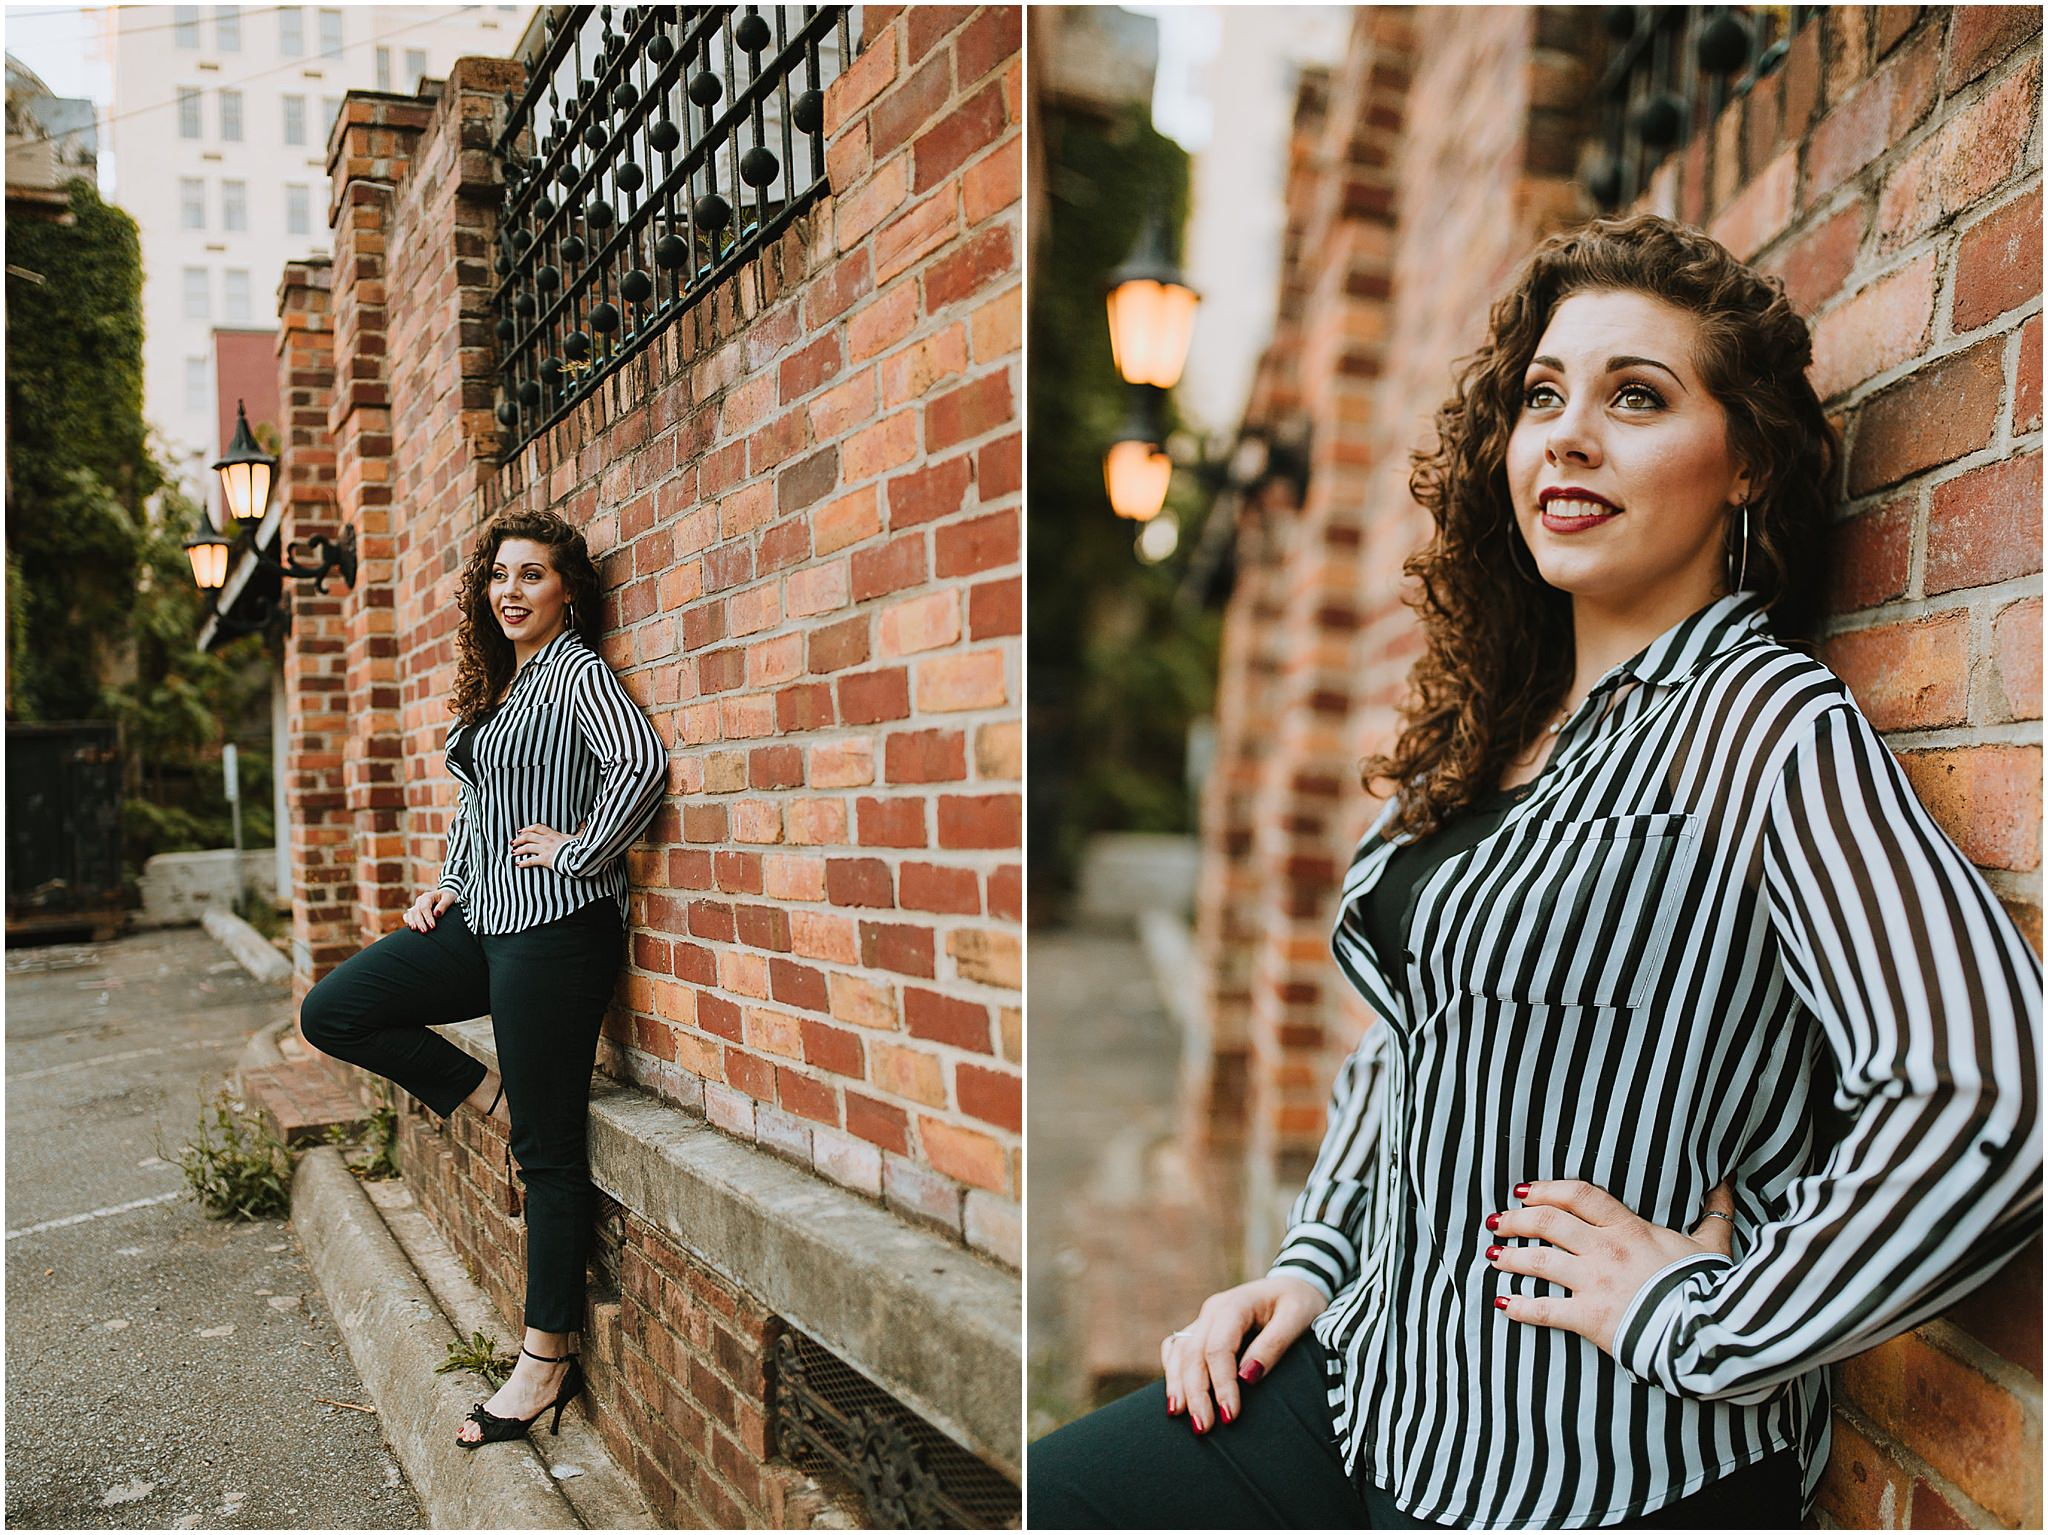 Senior Portrait Photographer Downtown Lynchburg Virginia, Sara's Senior Portrait Downtown Lynchburg, VA